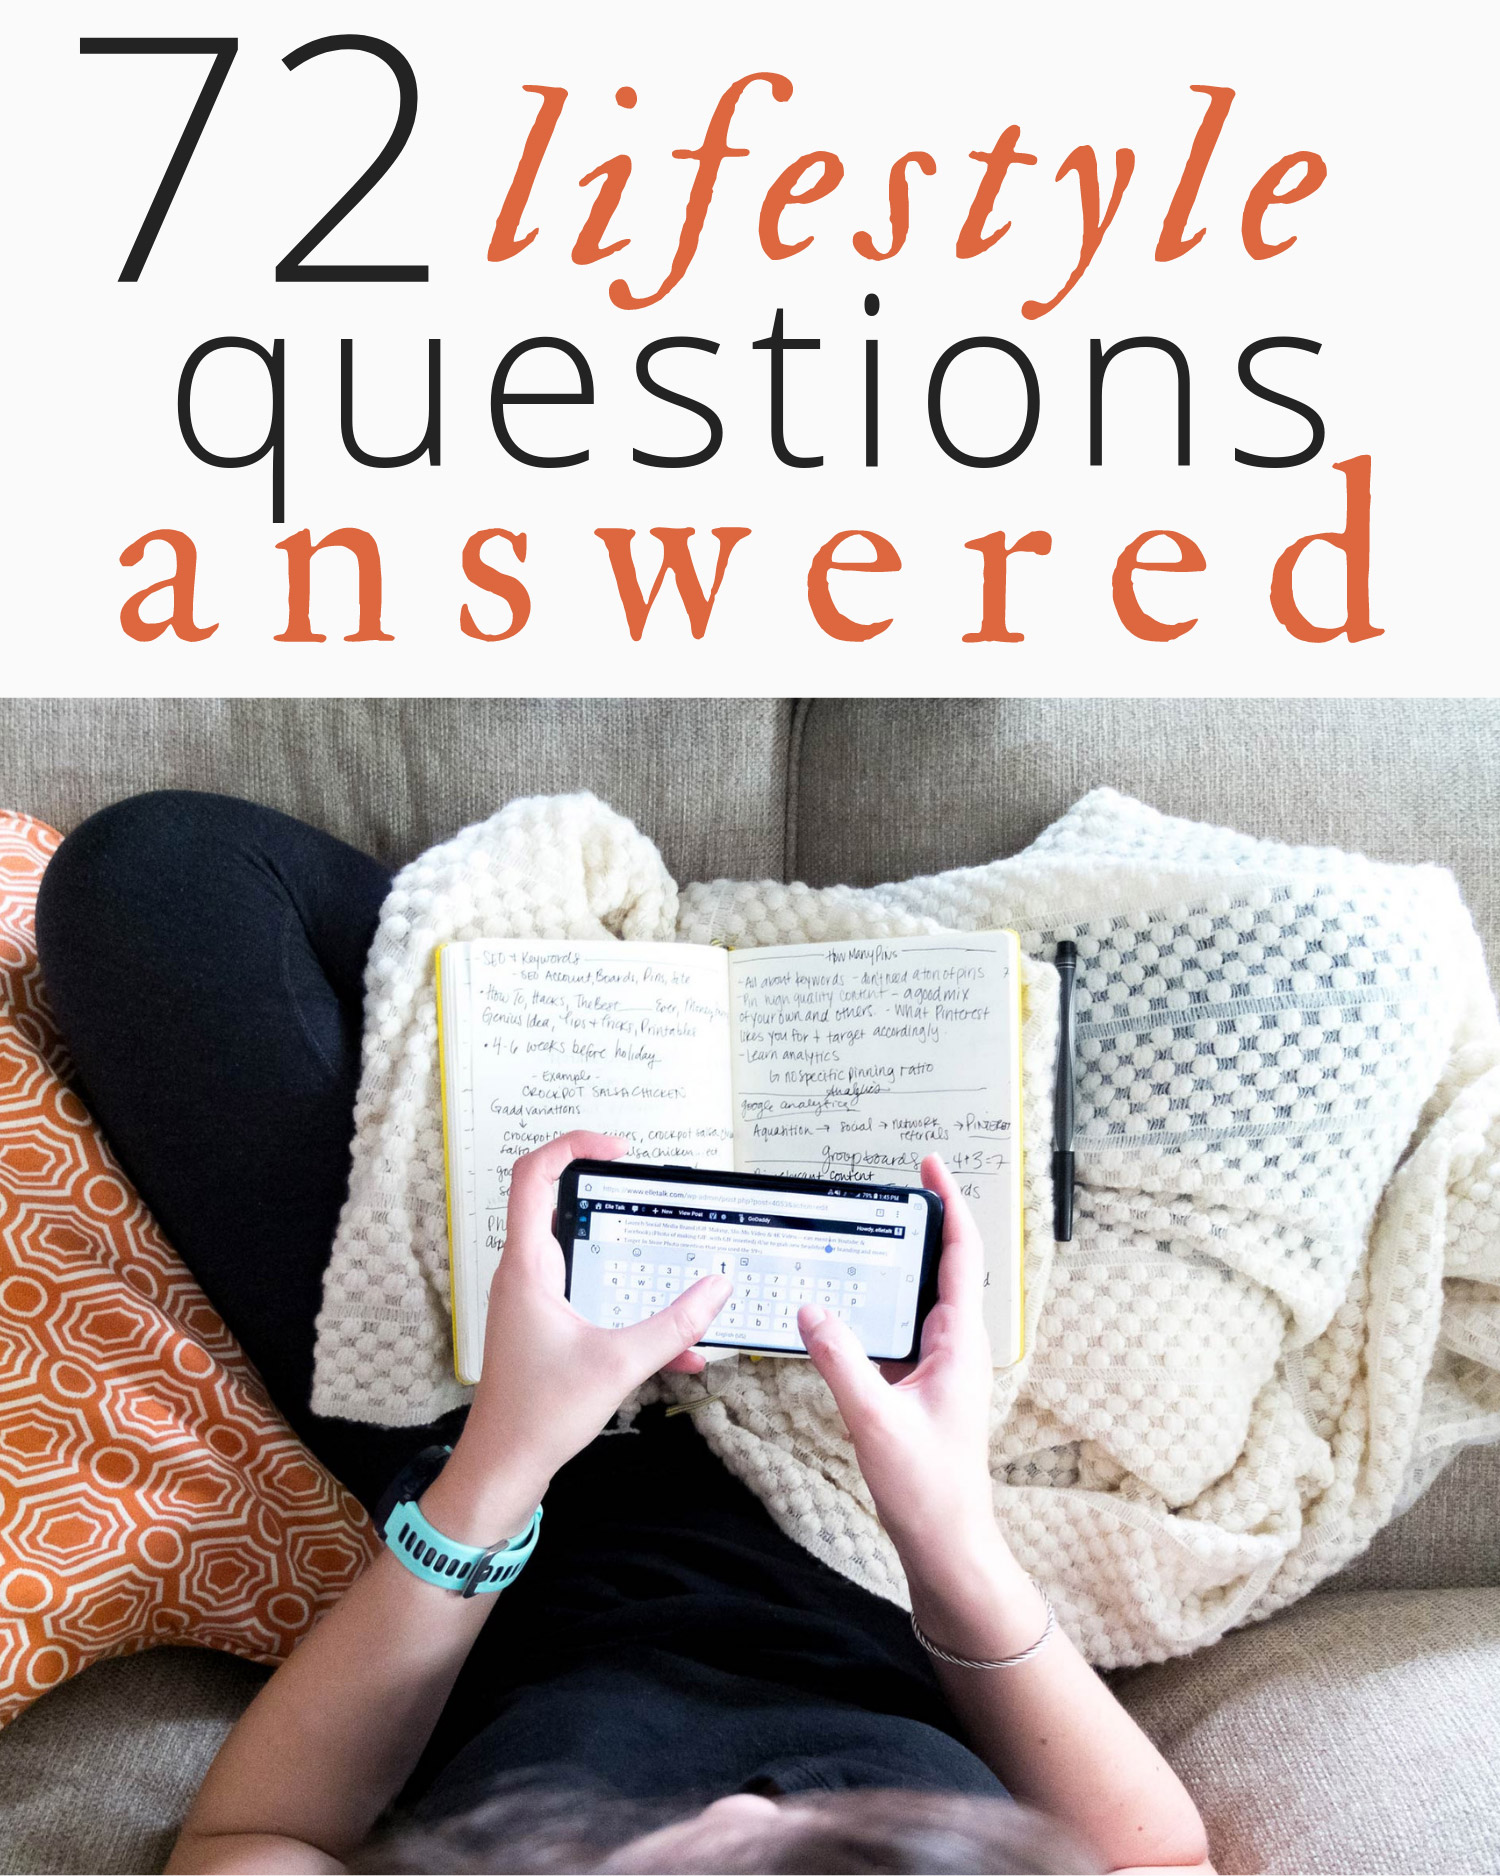 72 lifestyle questions from Elle Talk. Use this 72 blogger questionnaire for a fun blog post idea to have your readers get to know you better. #ElleTalk #Blogging #LifestyleBlogger #BlogPostIdeas